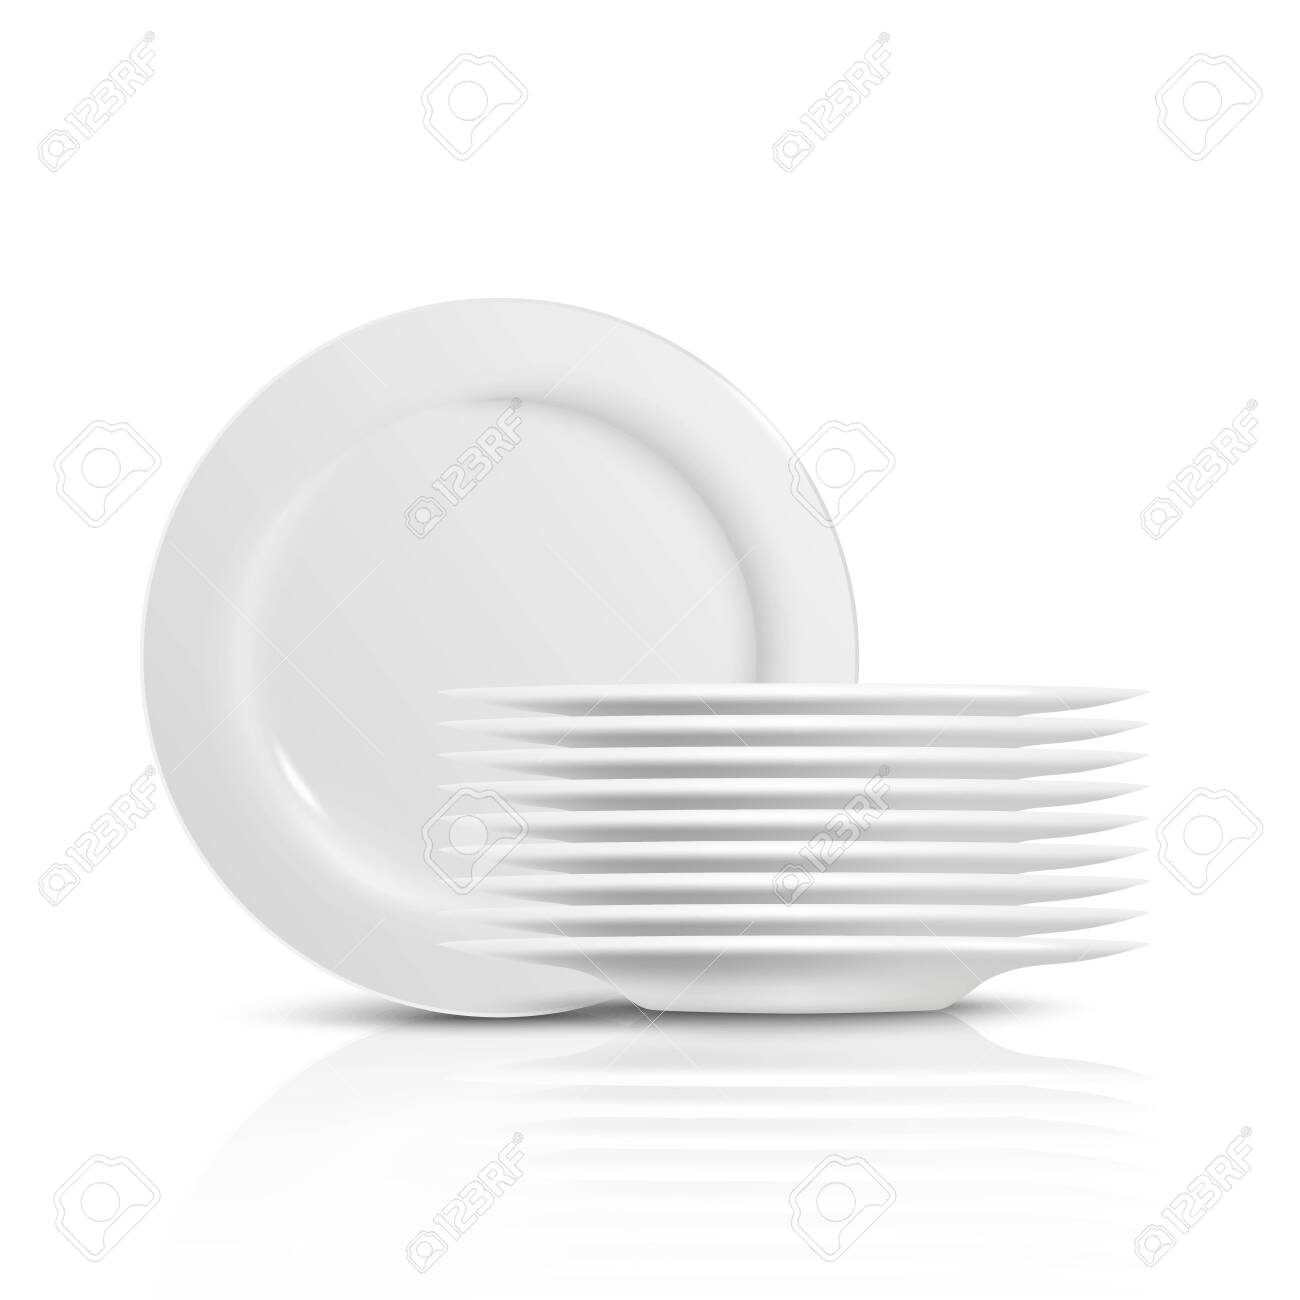 A pile and stack of clean white dishes and plates for serving..